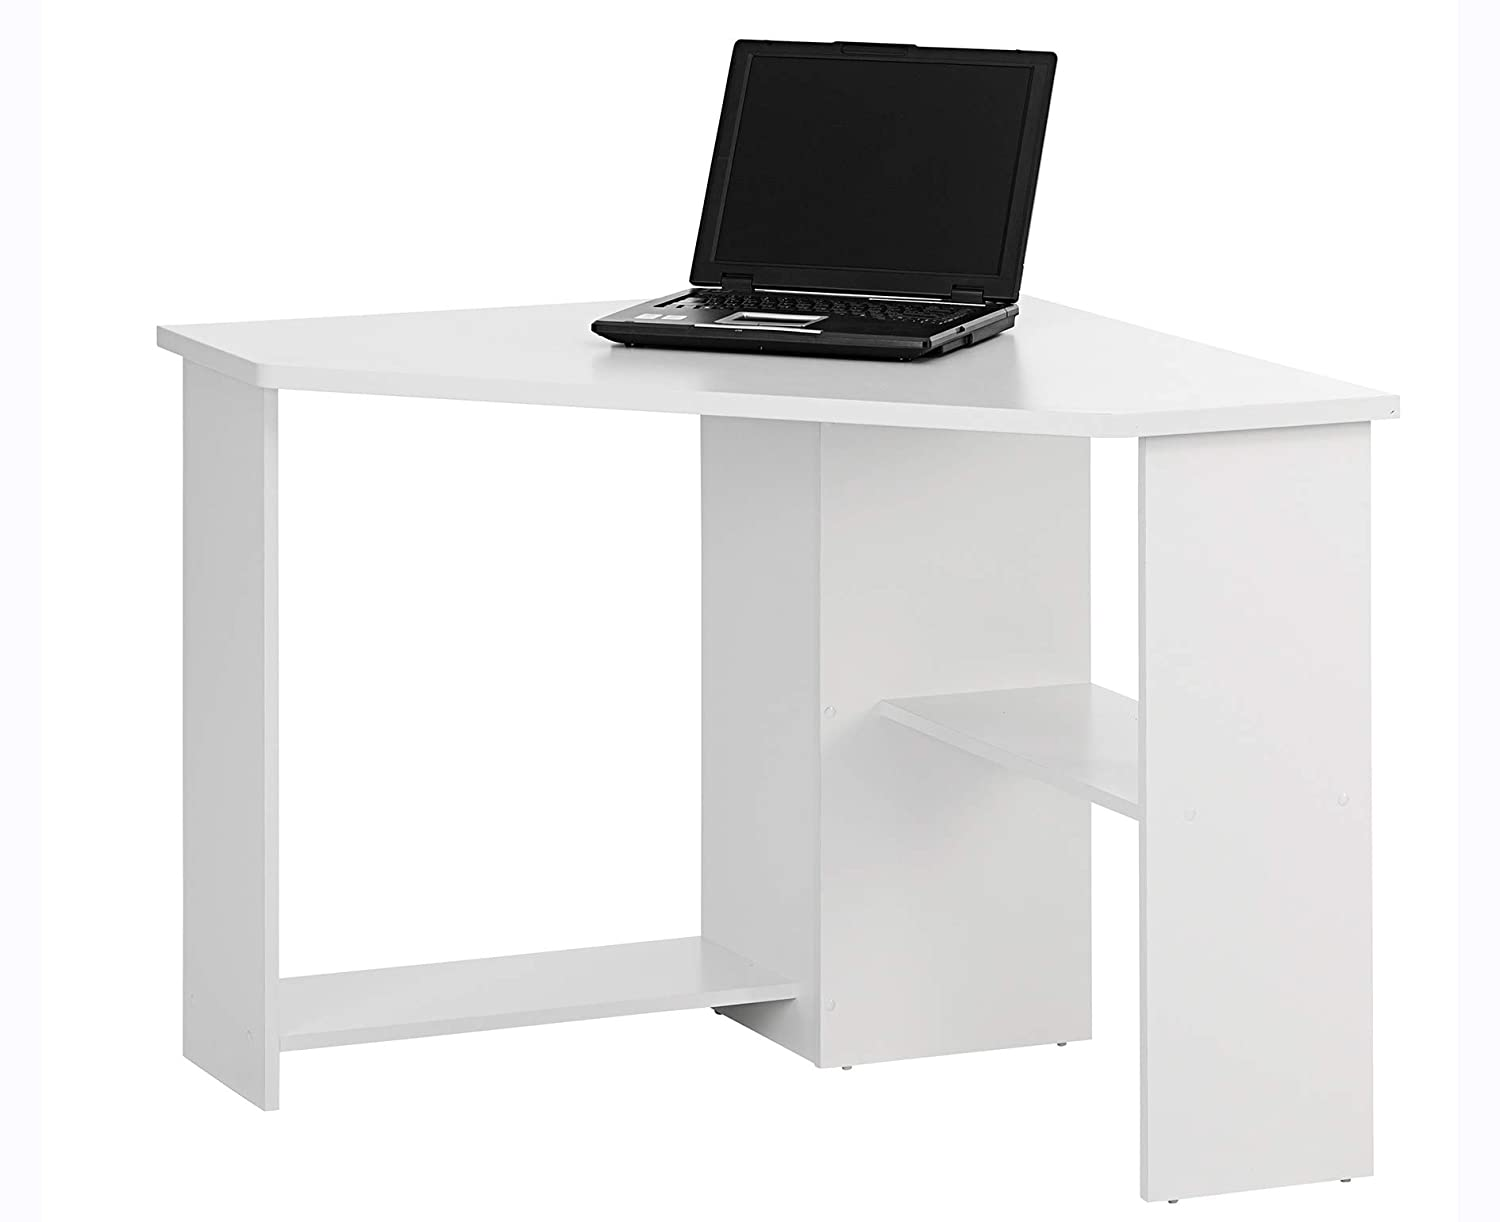 Bray corner home office desk color white finish amazon co uk kitchen home